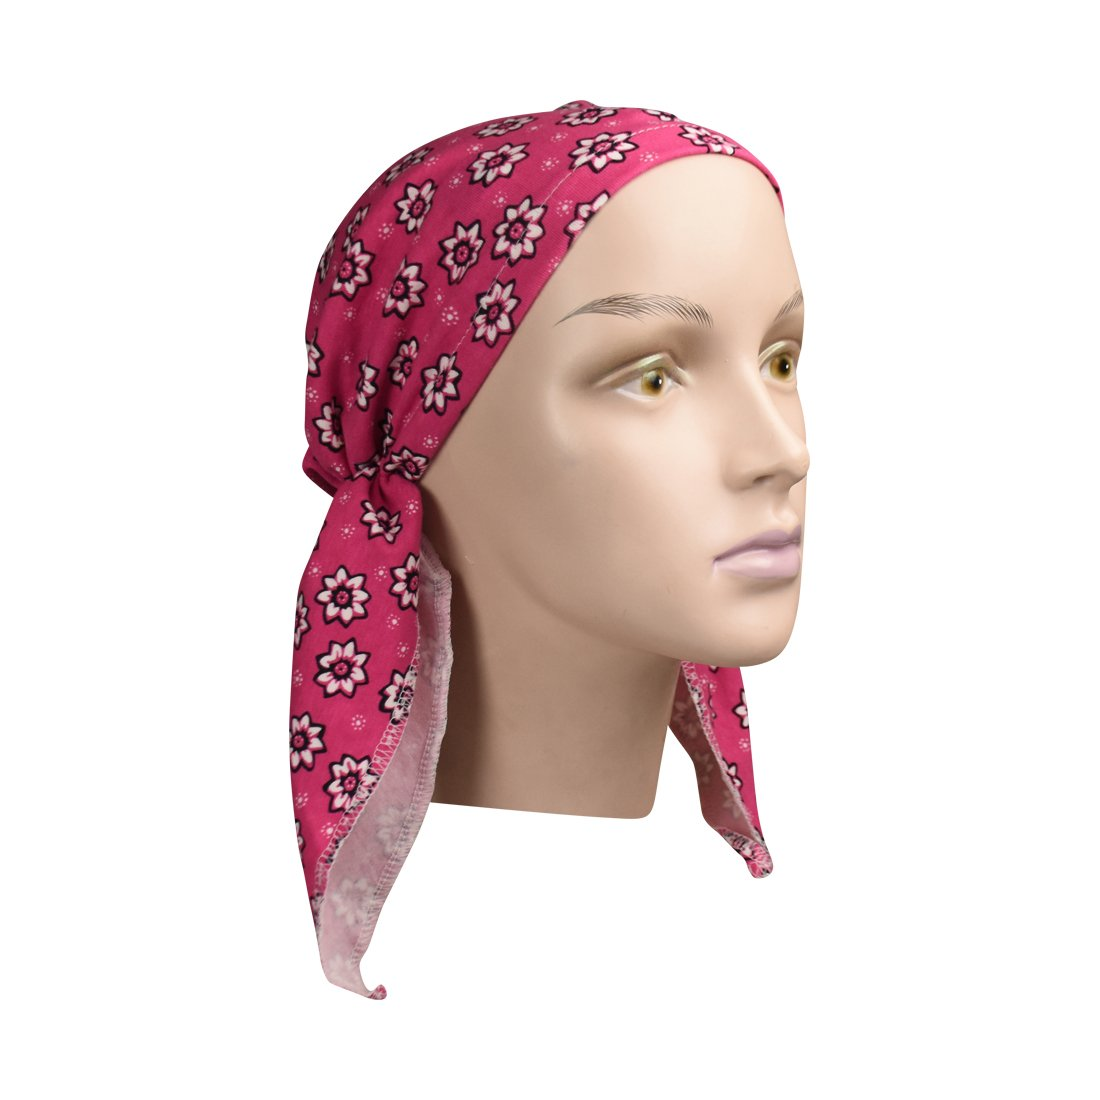 Made in the USA Chemo Cap Pretied for Girls Soft Cotton Cancer Scarf